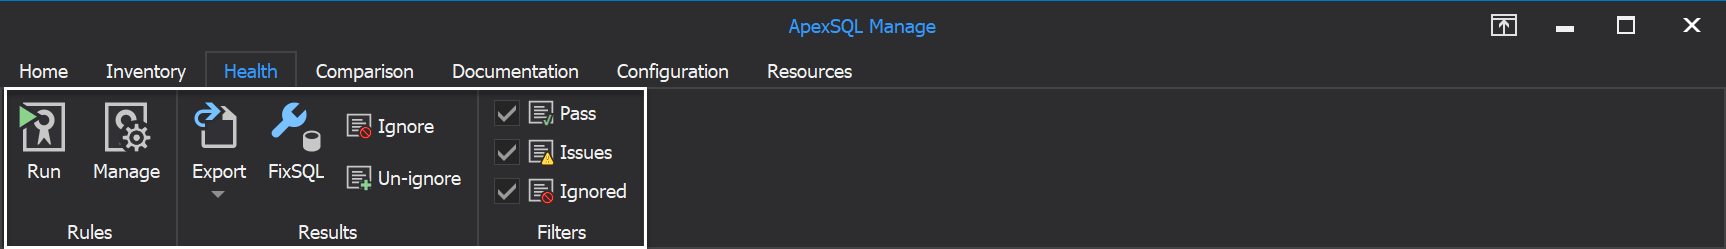 The Health tab of ApexSQL Manage tool